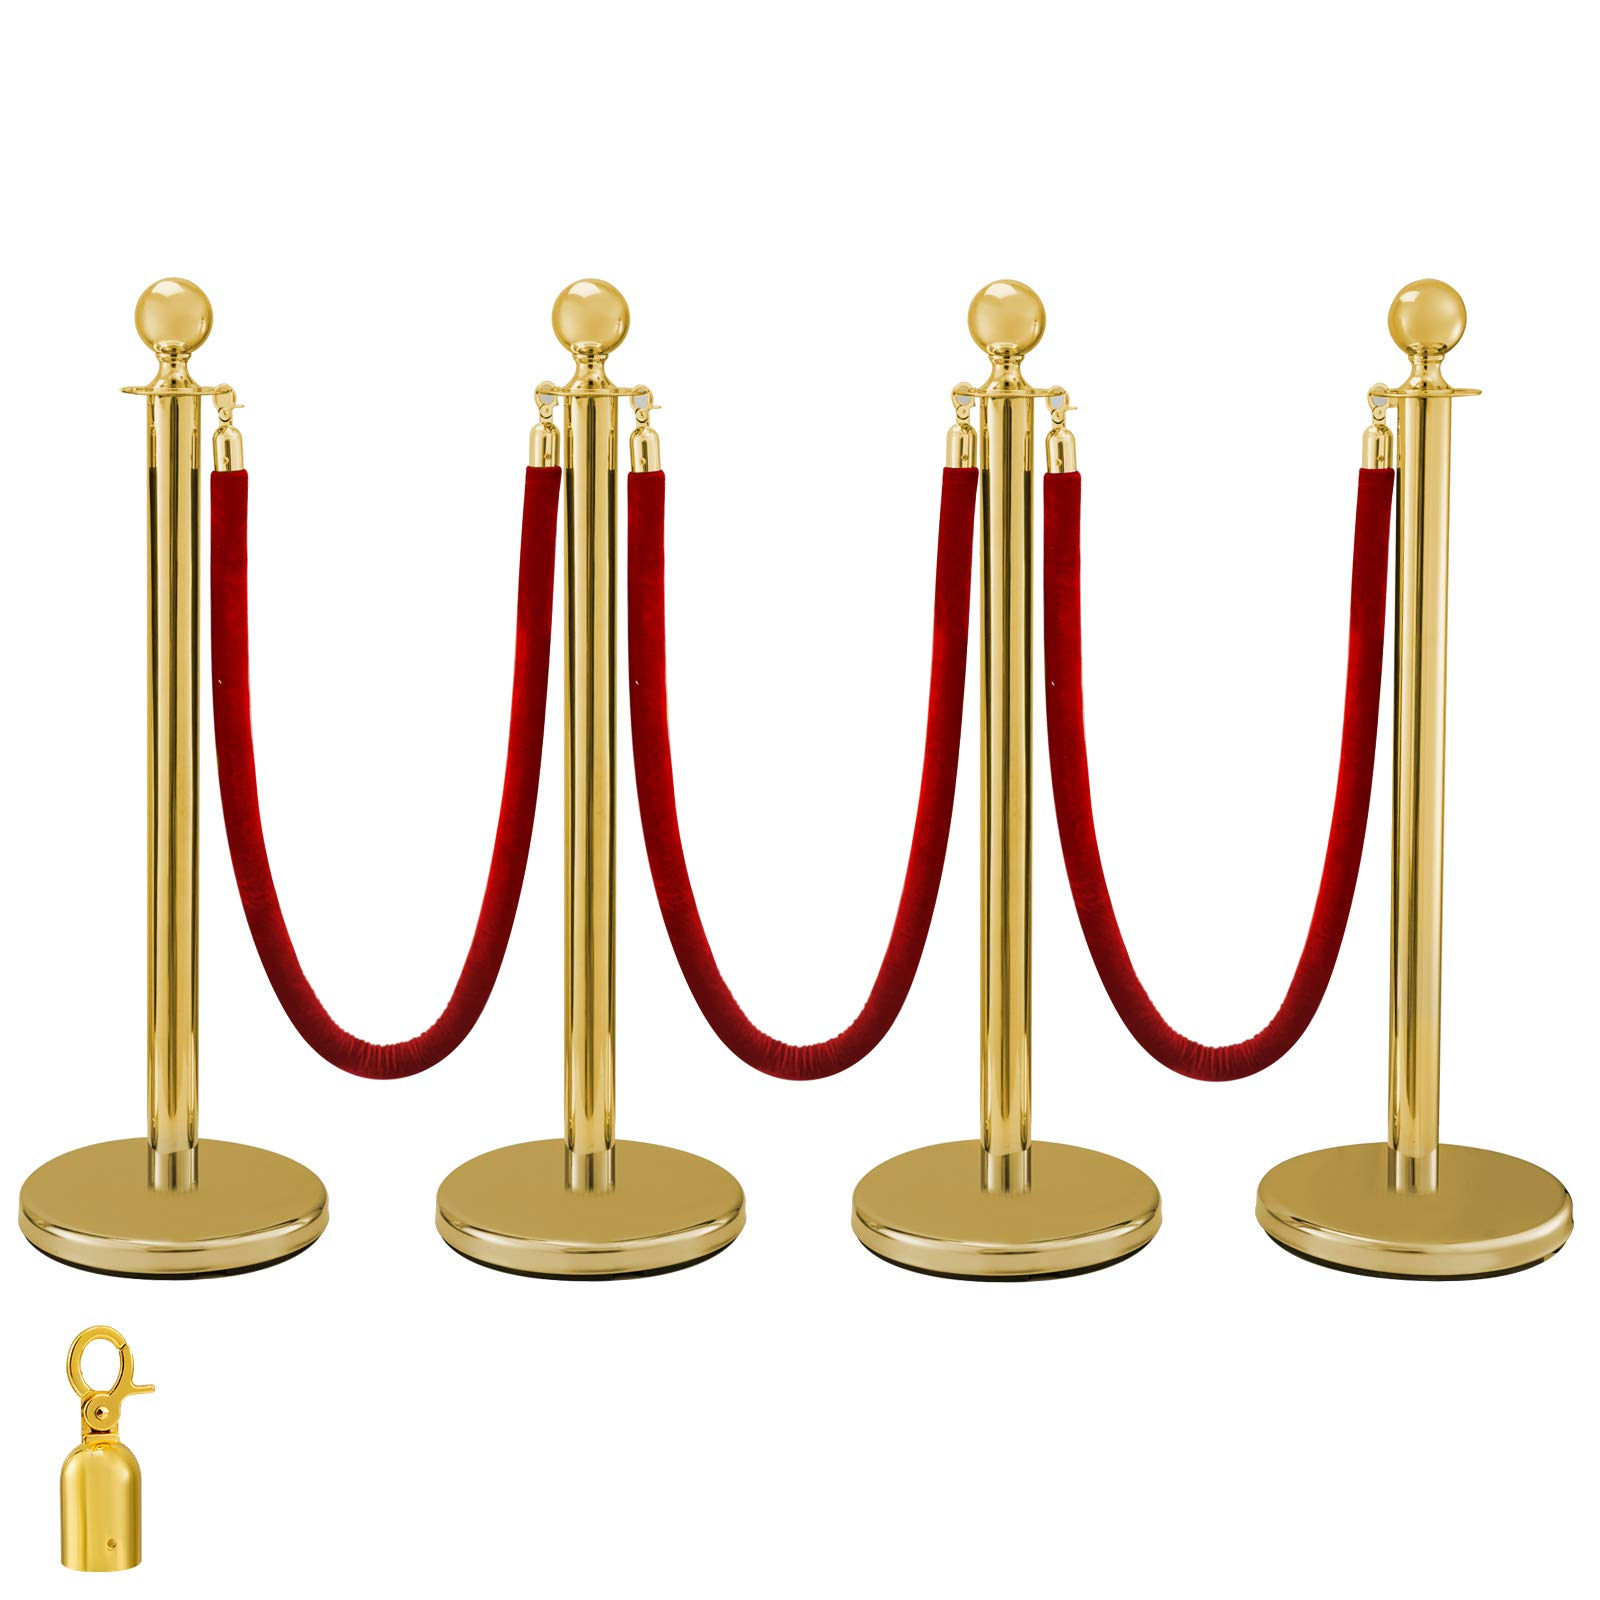 BestEquip 38 Inch Gold Stanchion Posts Queue 4Pcs Red Velvet Rope Crowd Control Barriers Queue Line Rope Barriers for Patrty Supplies by BestEquip